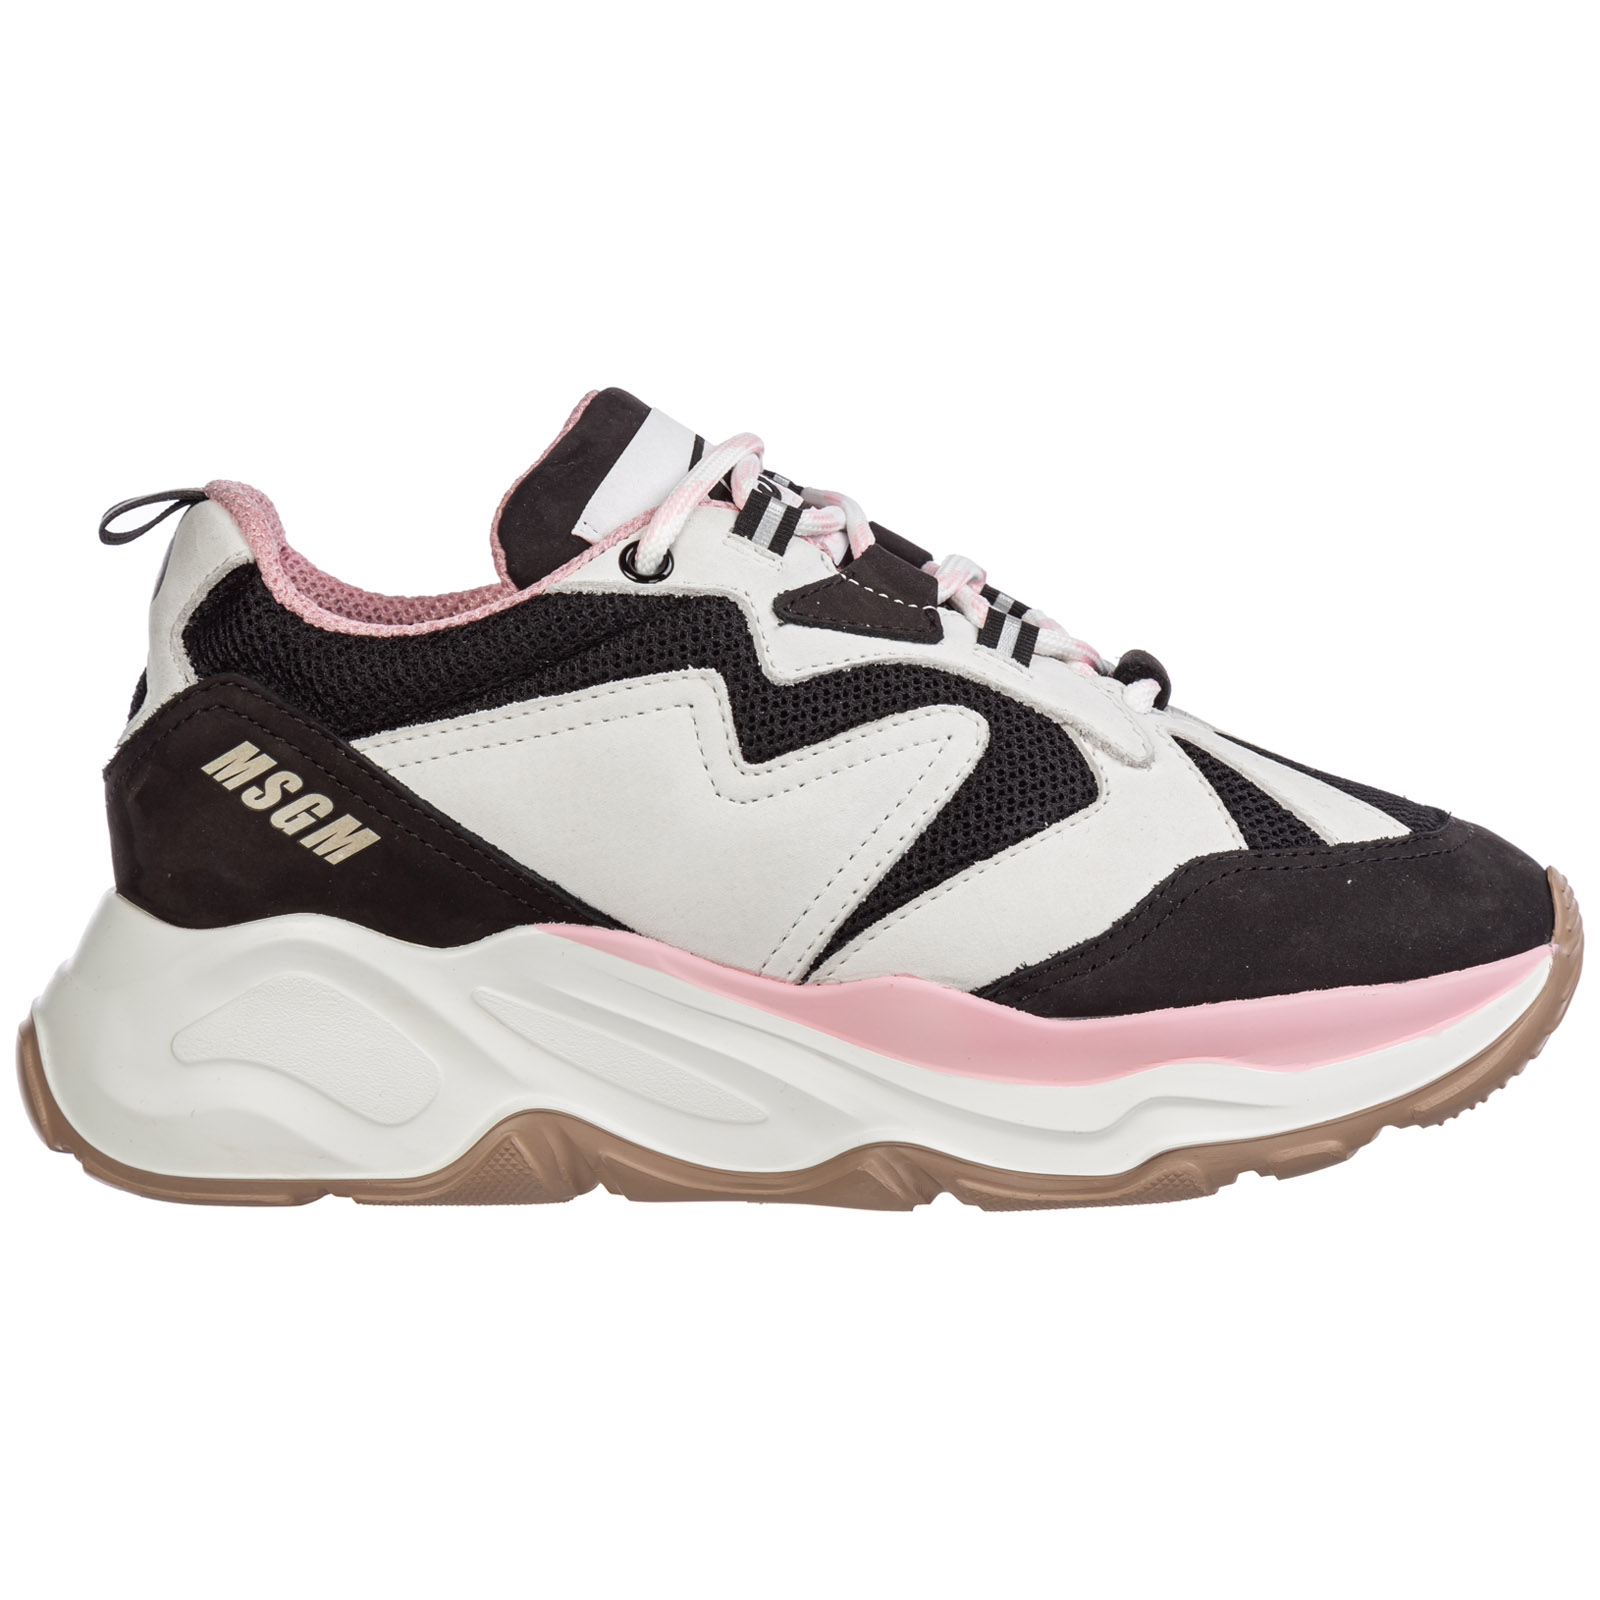 Msgm Sneakers WOMEN'S SHOES SUEDE TRAINERS SNEAKERS ATTACK